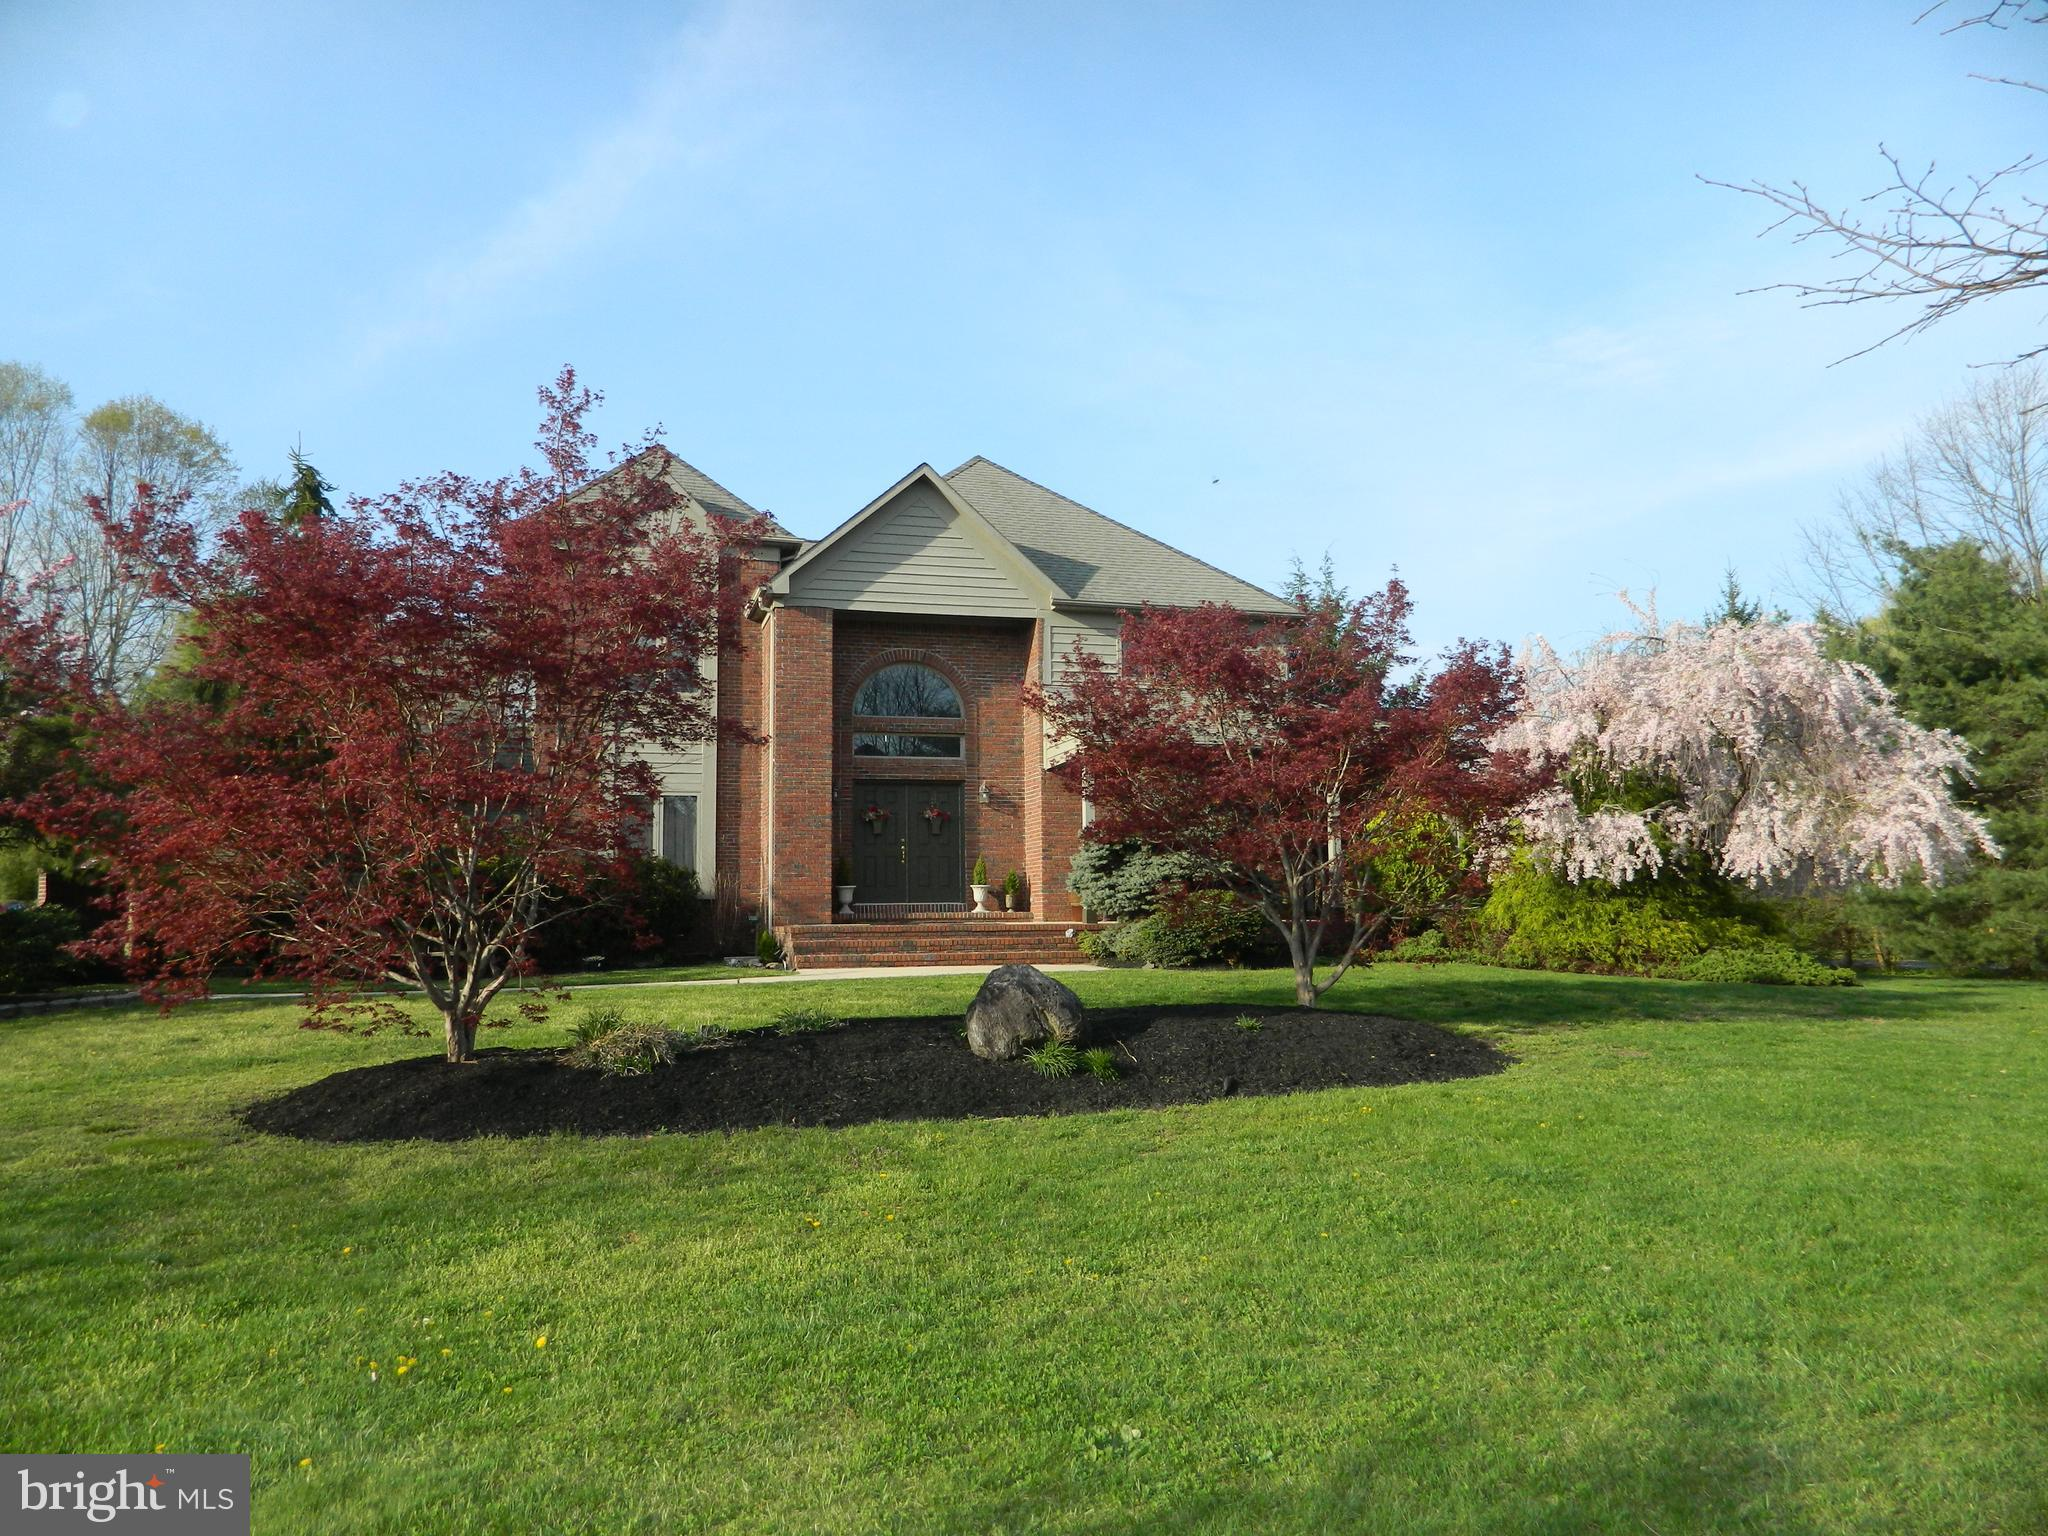 2 ROSEWOOD DRIVE, CHESTERFIELD, NJ 08515